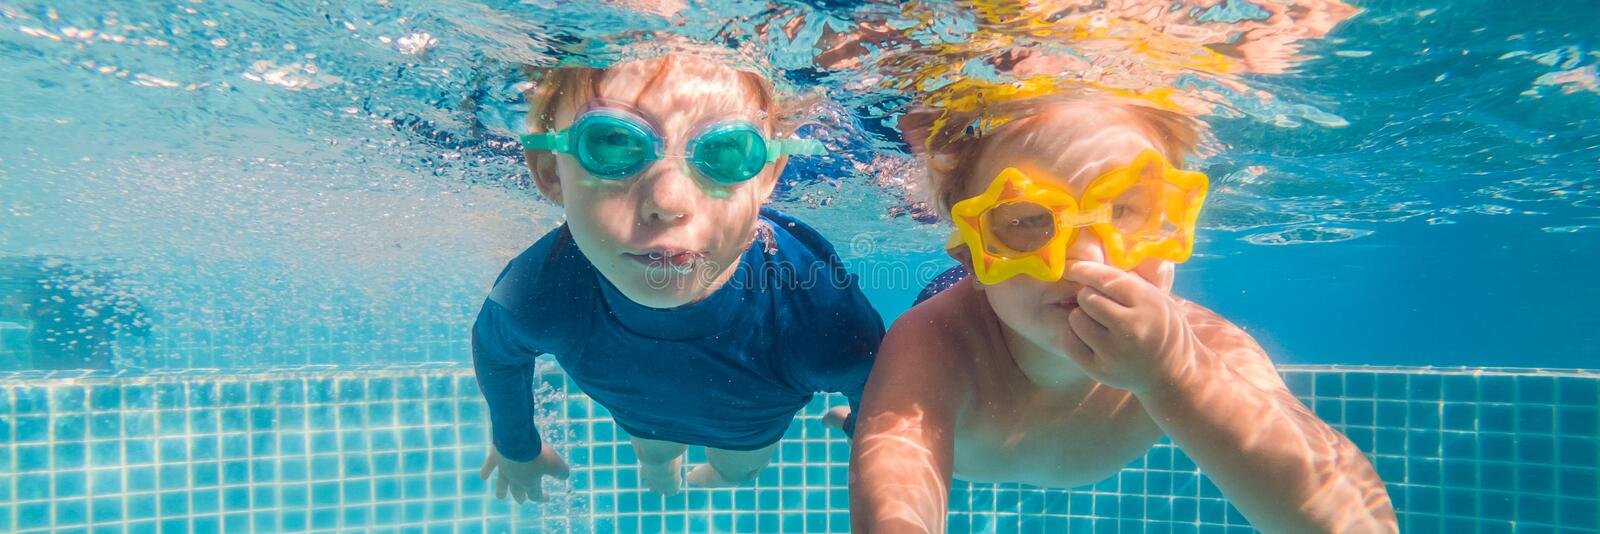 Close-up underwater portrait of the two cute smiling kids BANNER, LONG FORMAT. Close-up underwater portrait of the two cute smiling kids. BANNER, LONG FORMAT stock image